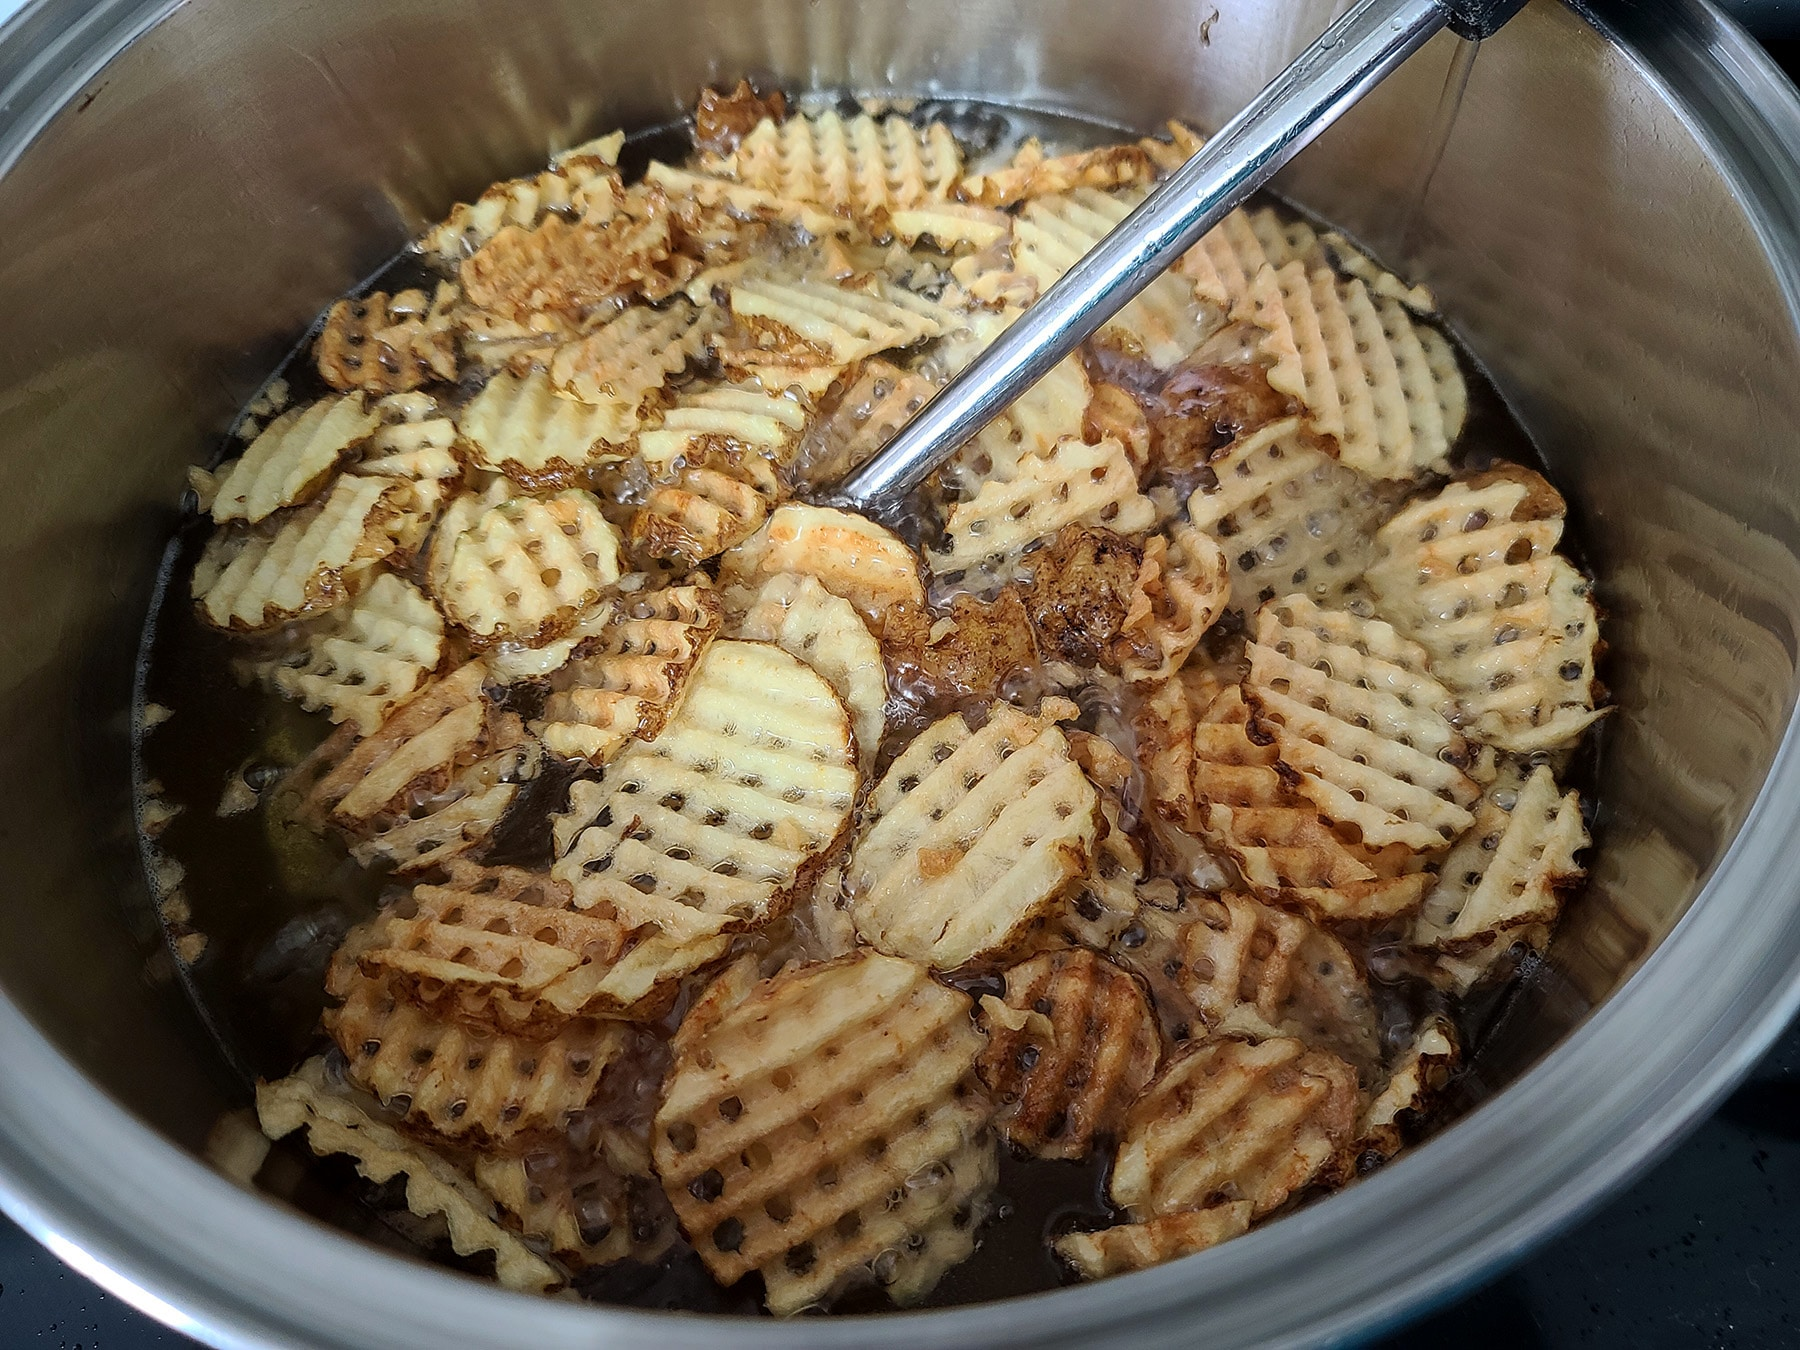 A large pot of oil, deep frying waffle fries. The potatoes are golden brown this time.